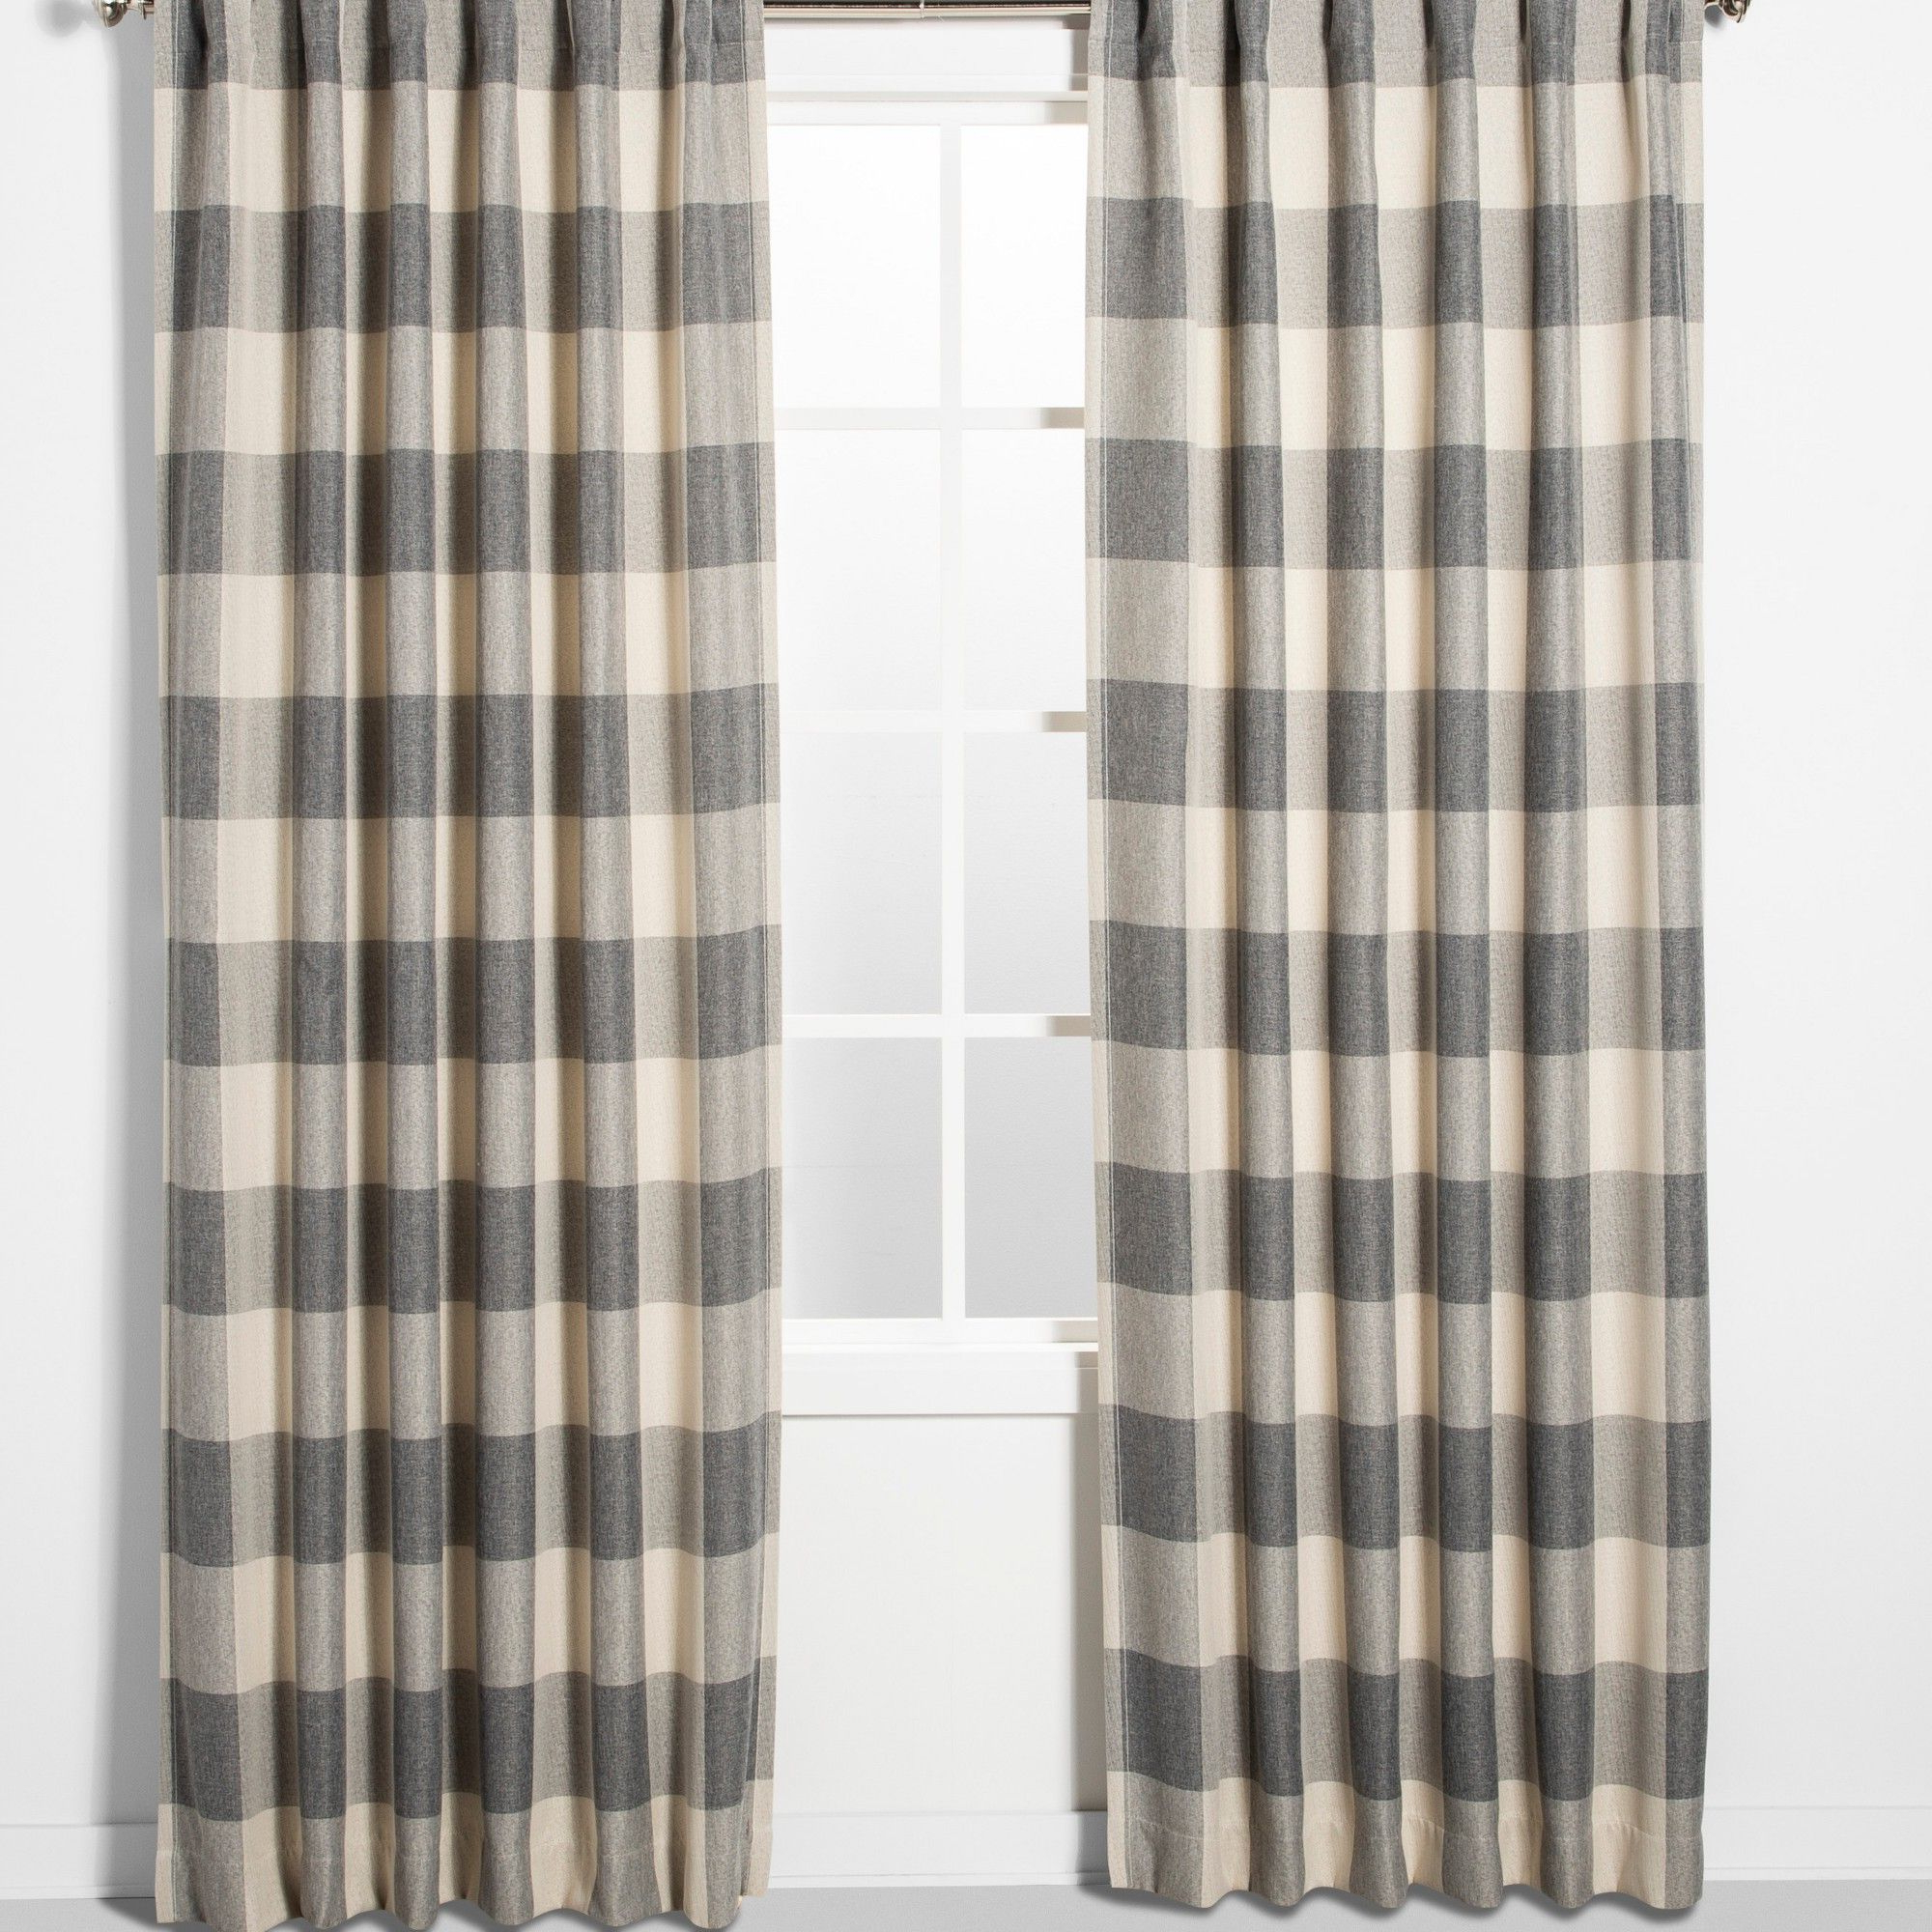 """52""""x84"""" Larkhall Plaid Blackout Window Curtain Panel Gray For Well Known Ombre Stripe Yarn Dyed Cotton Window Curtain Panel Pairs (View 2 of 20)"""